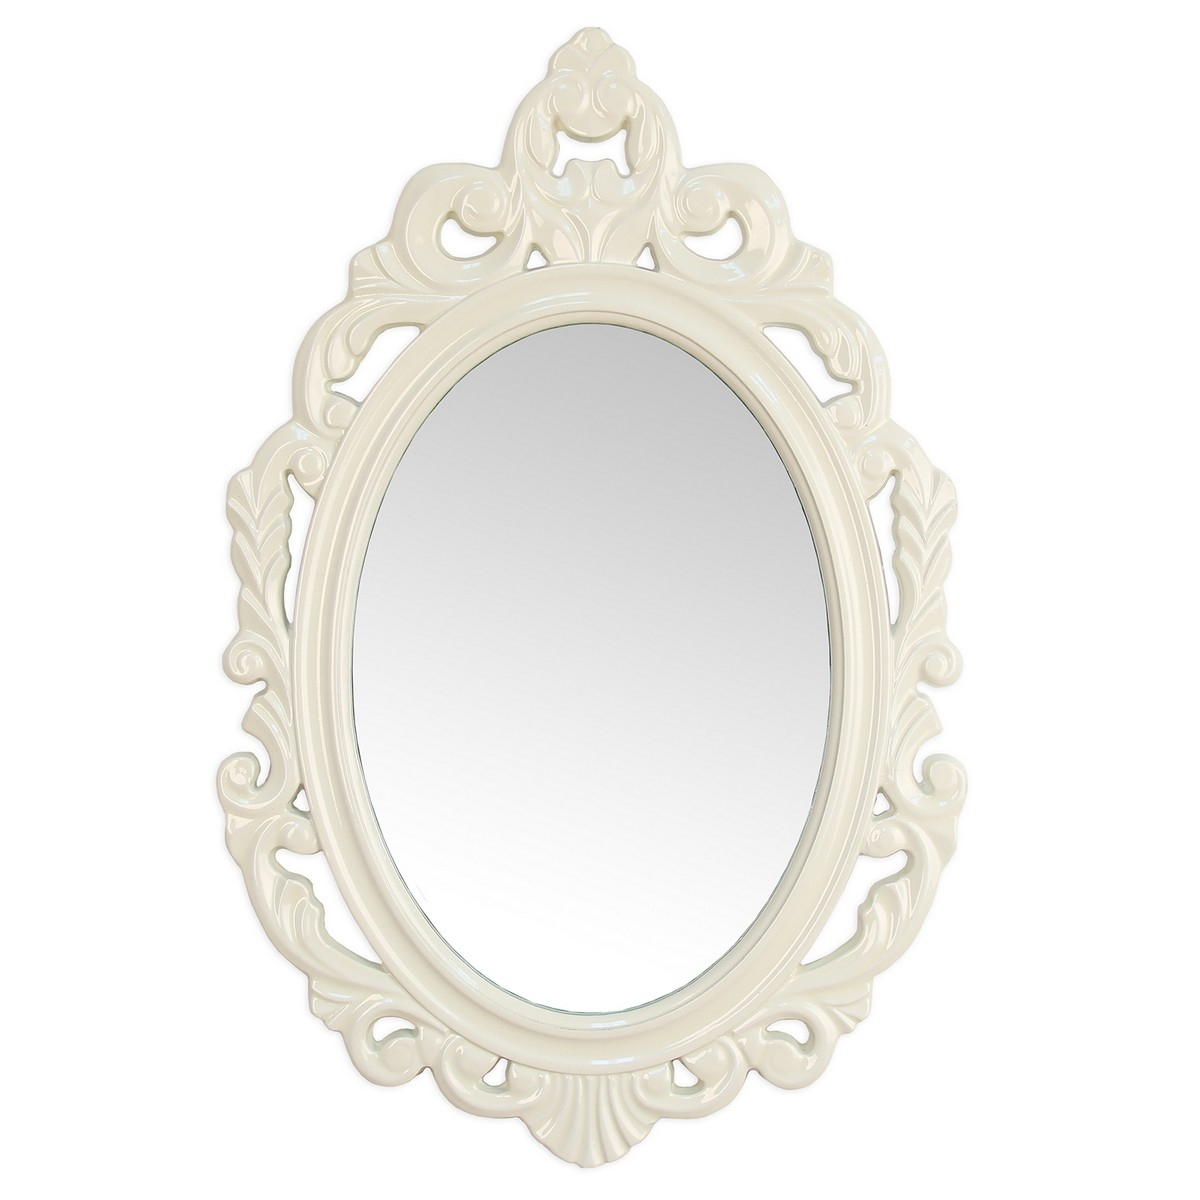 Stratton Home Decor White Baroque Mirror White Shd0058 At Inside Baroque Mirror White (Image 8 of 15)